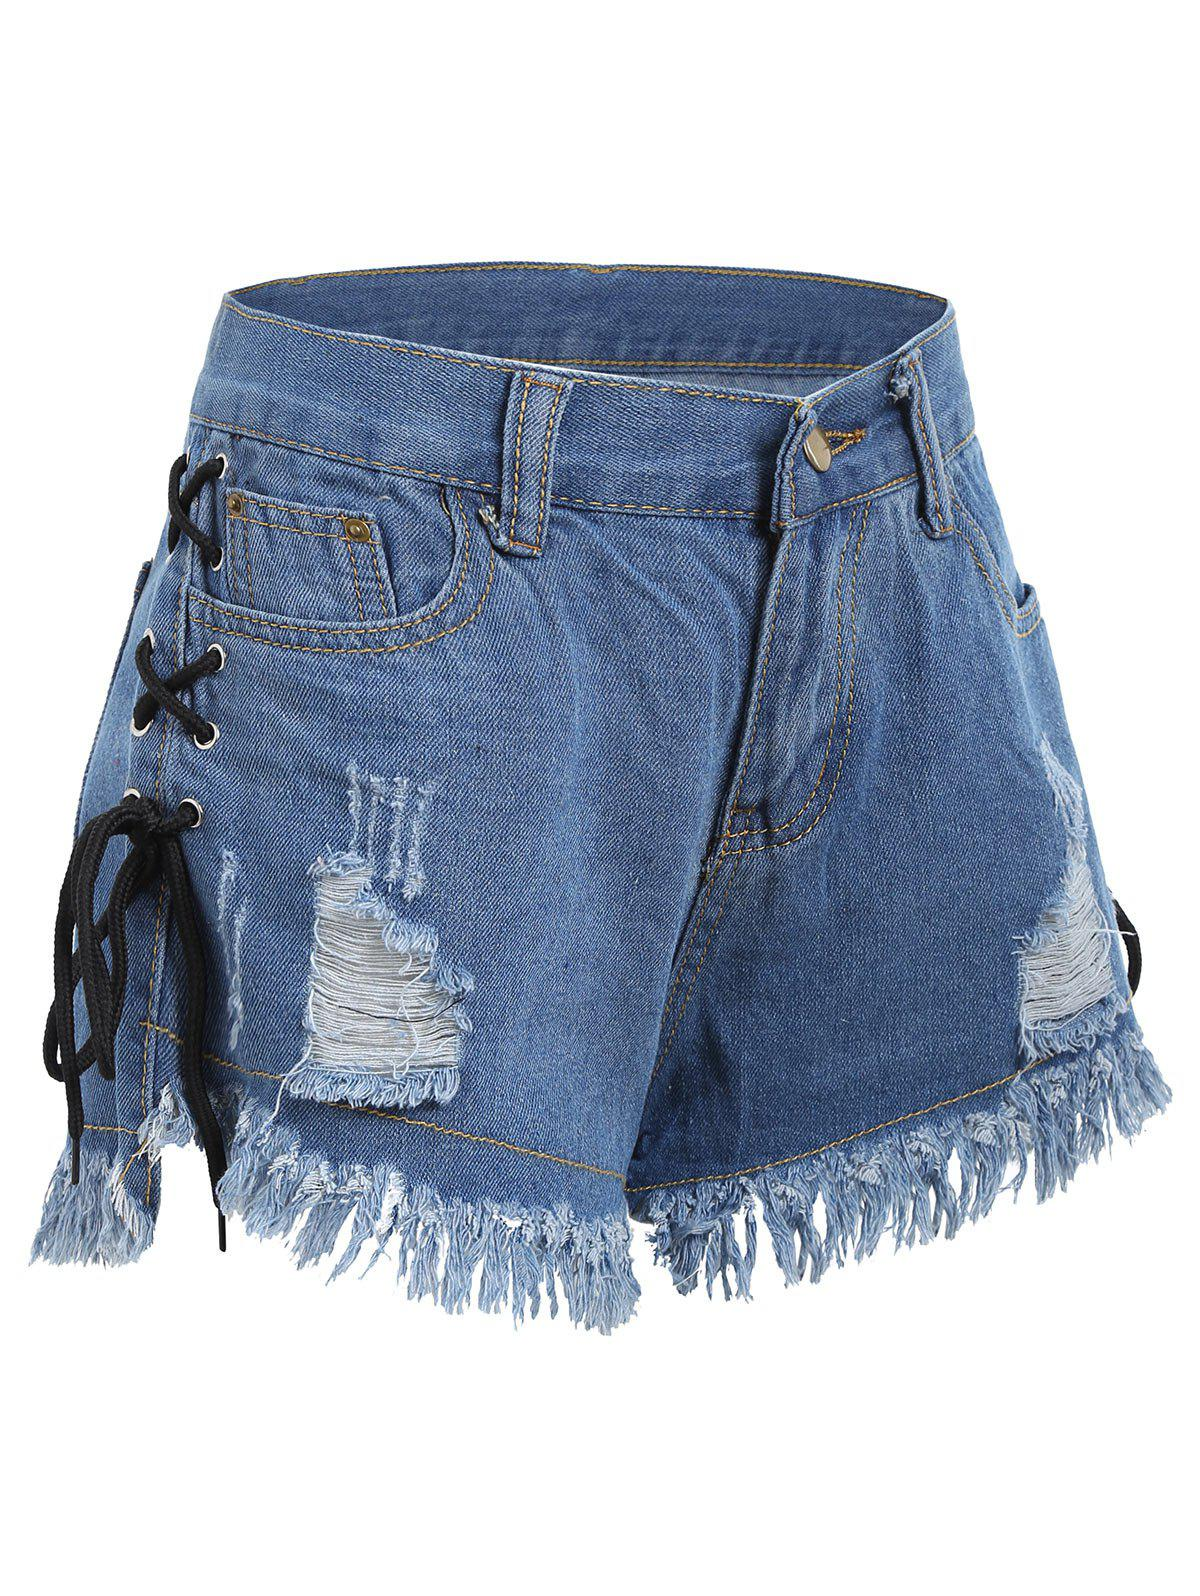 4823554c0c 53% OFF] Lace Up Frayed Hem Ripped Denim Shorts | Rosegal